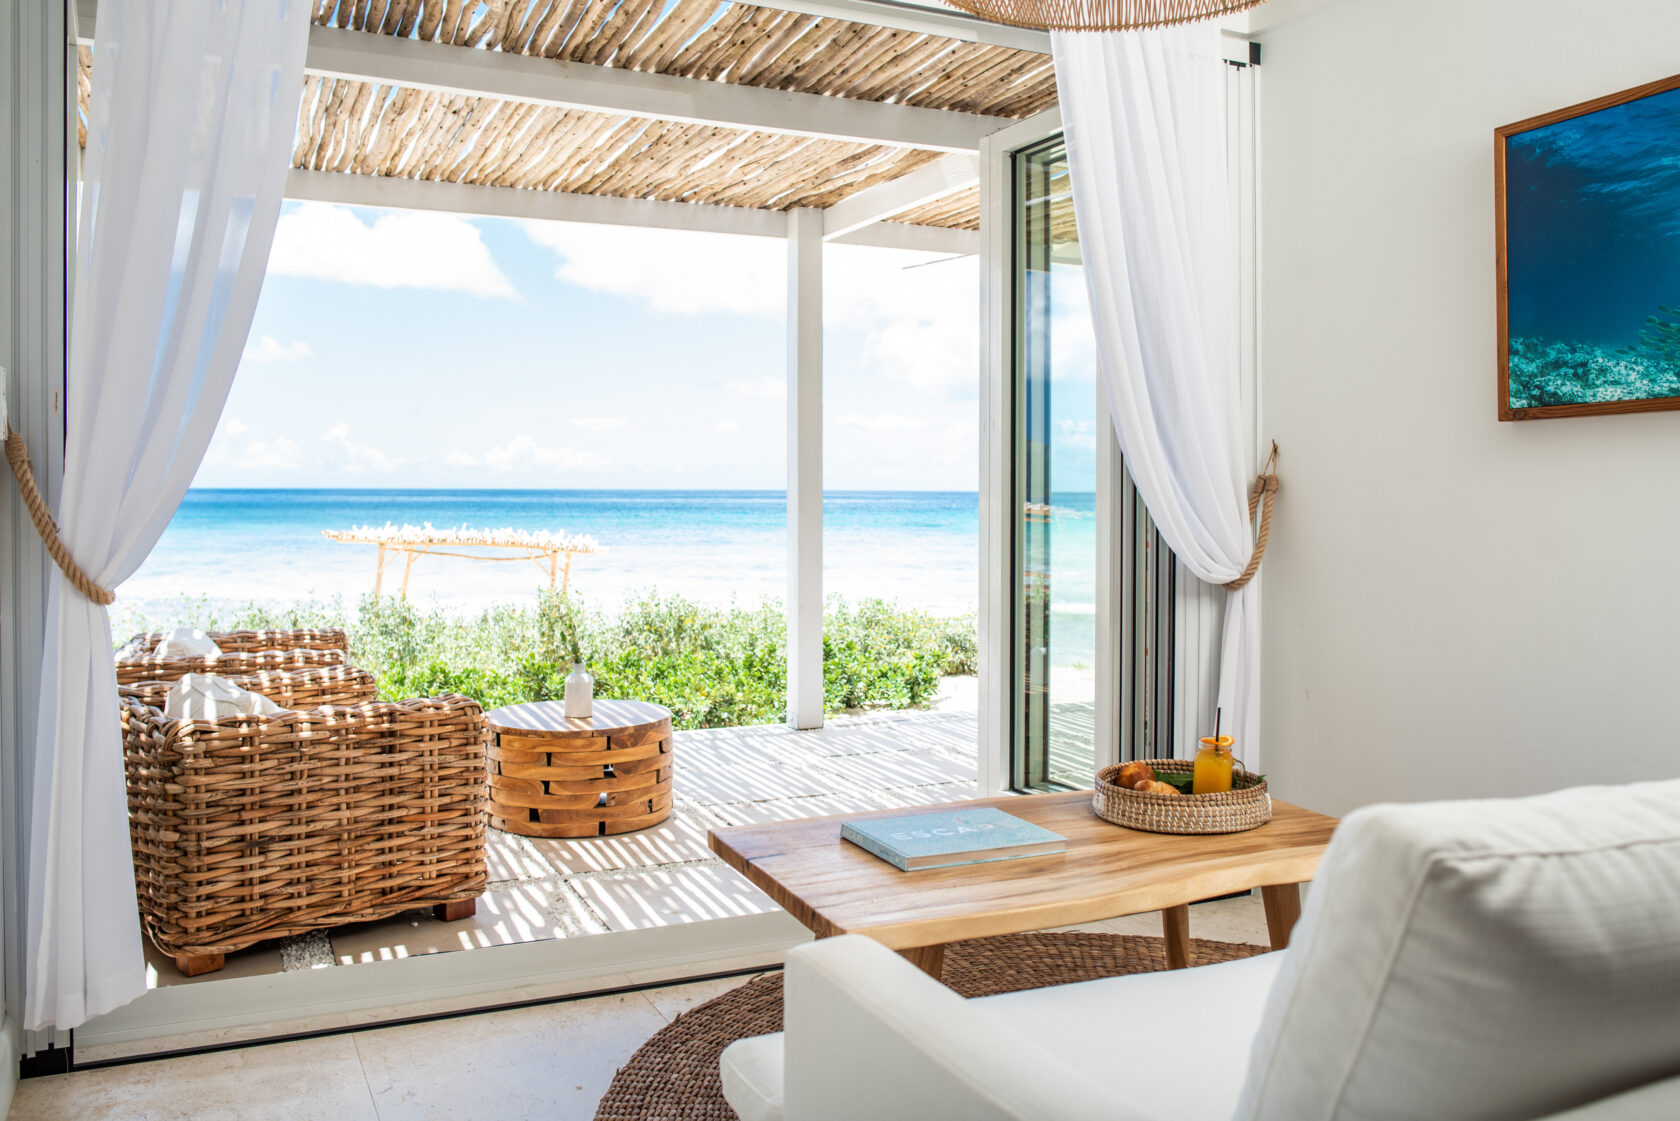 Beachside covered porch